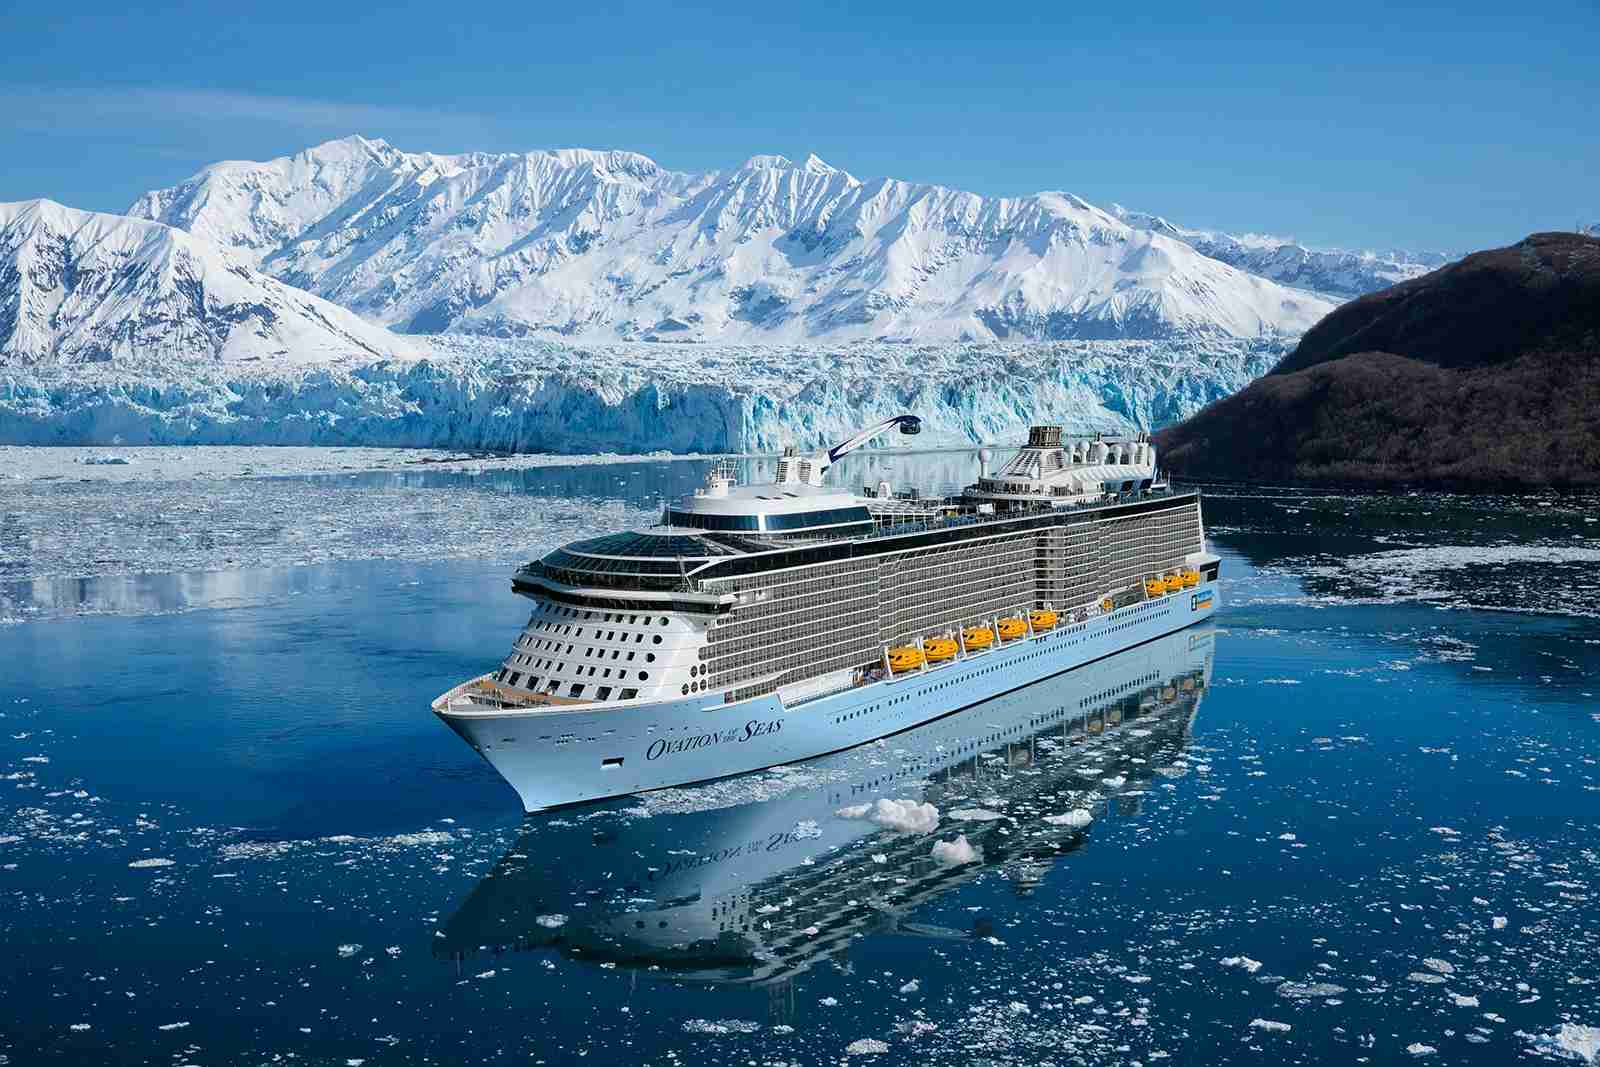 Alaska Cruise Tips: Best Itineraries, Ports And Ships